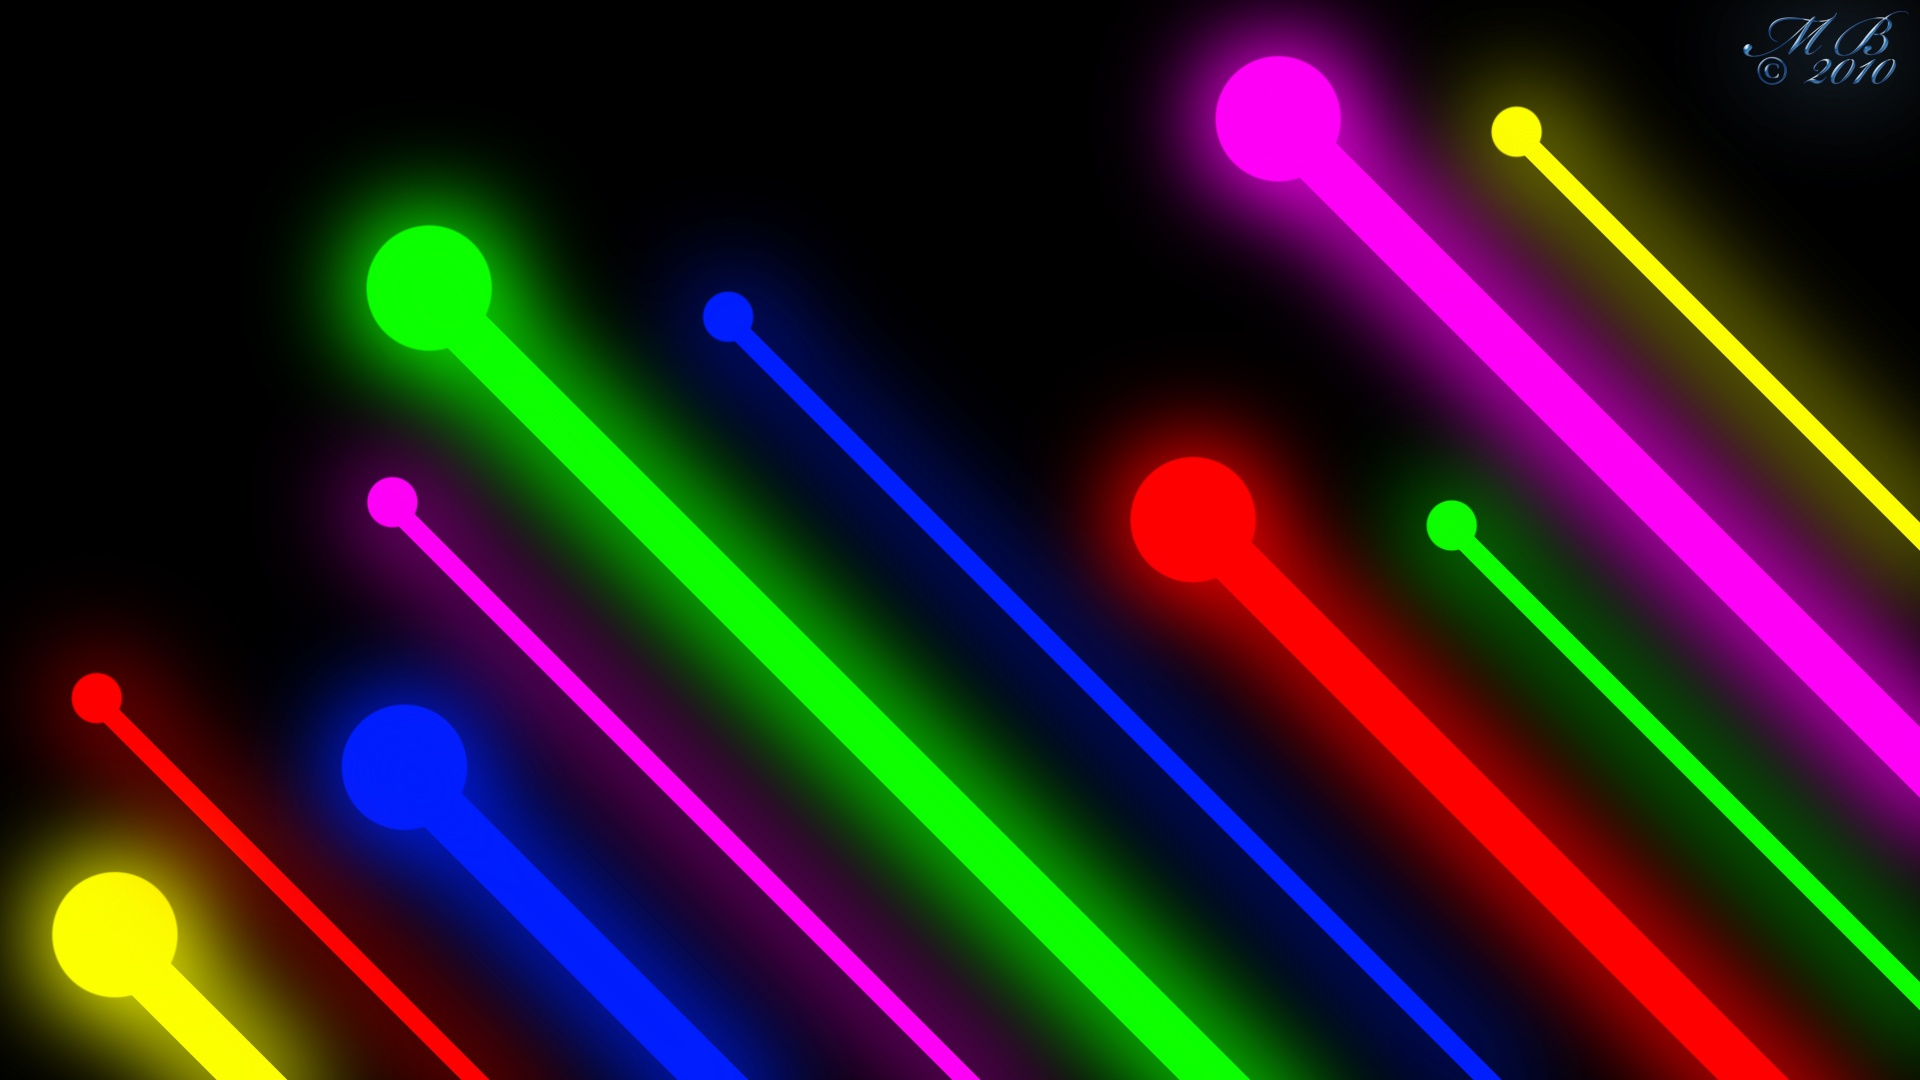 Neon Light Wallpaper Wallpaper Hd Neon Light Wallpaper Jpg 1920x1080